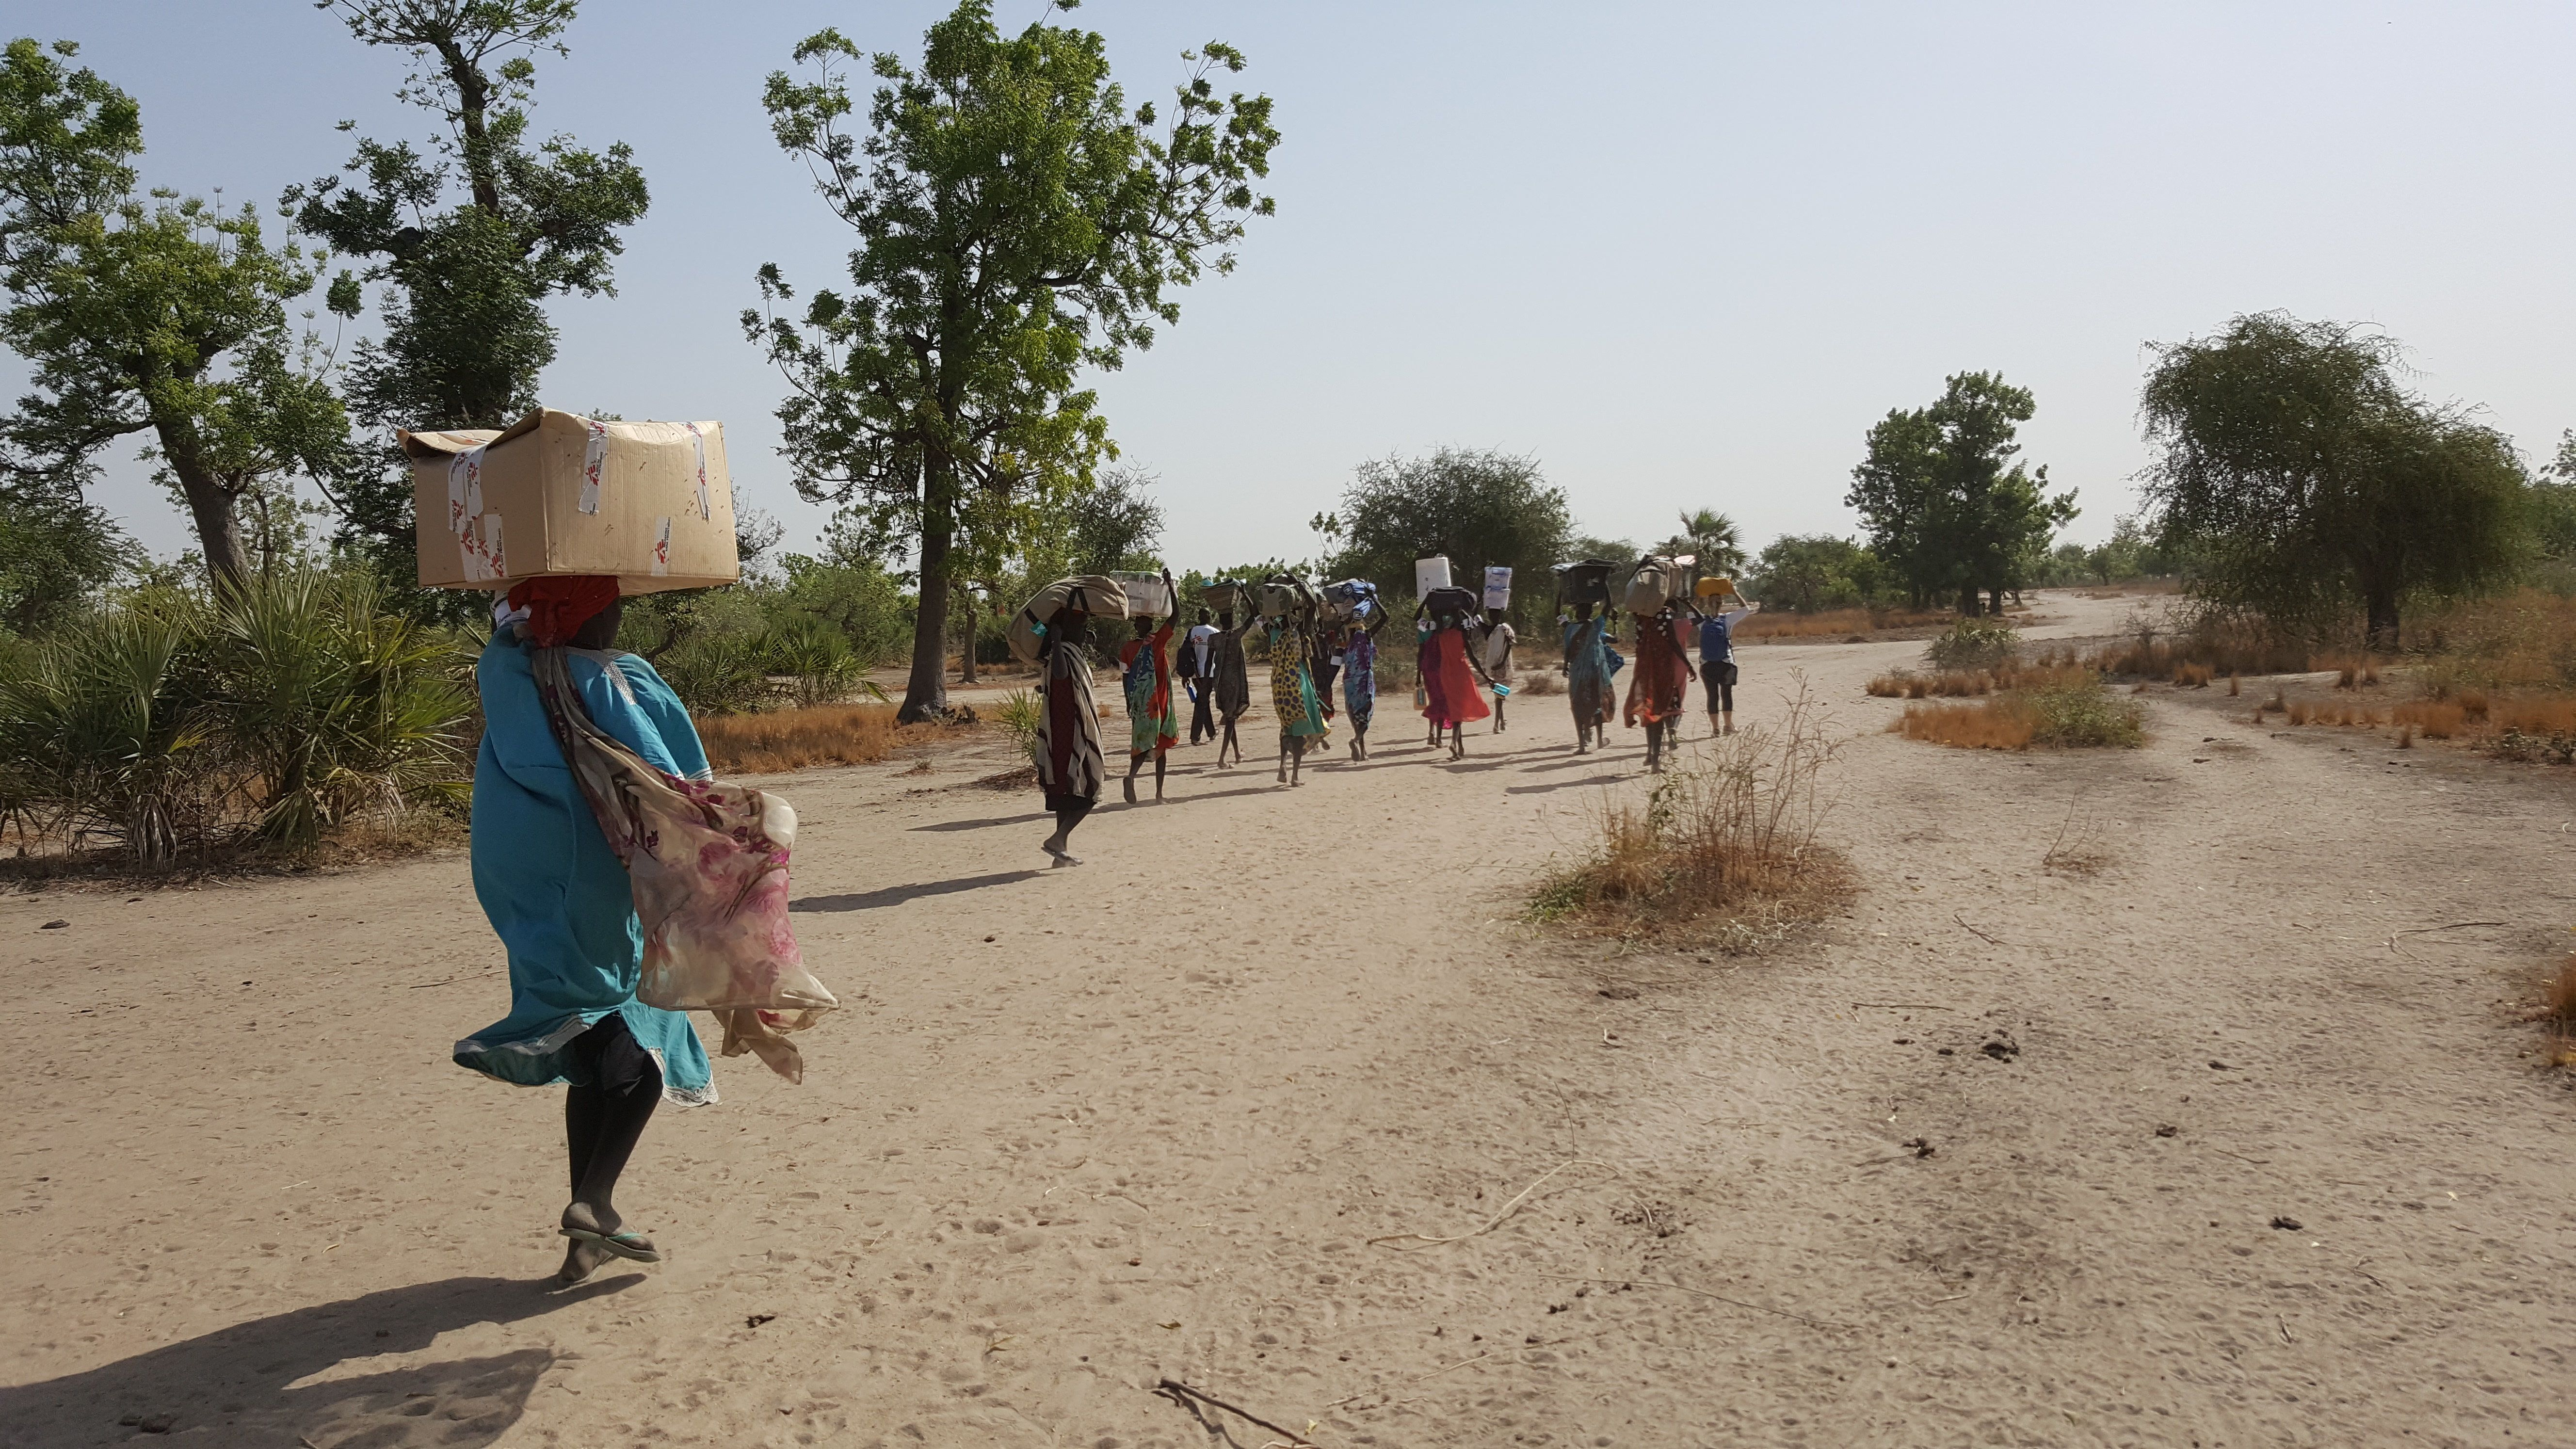 Mobile health workers in South Sudan sometimes have to walk for long hours, so they hire people from the local community to h